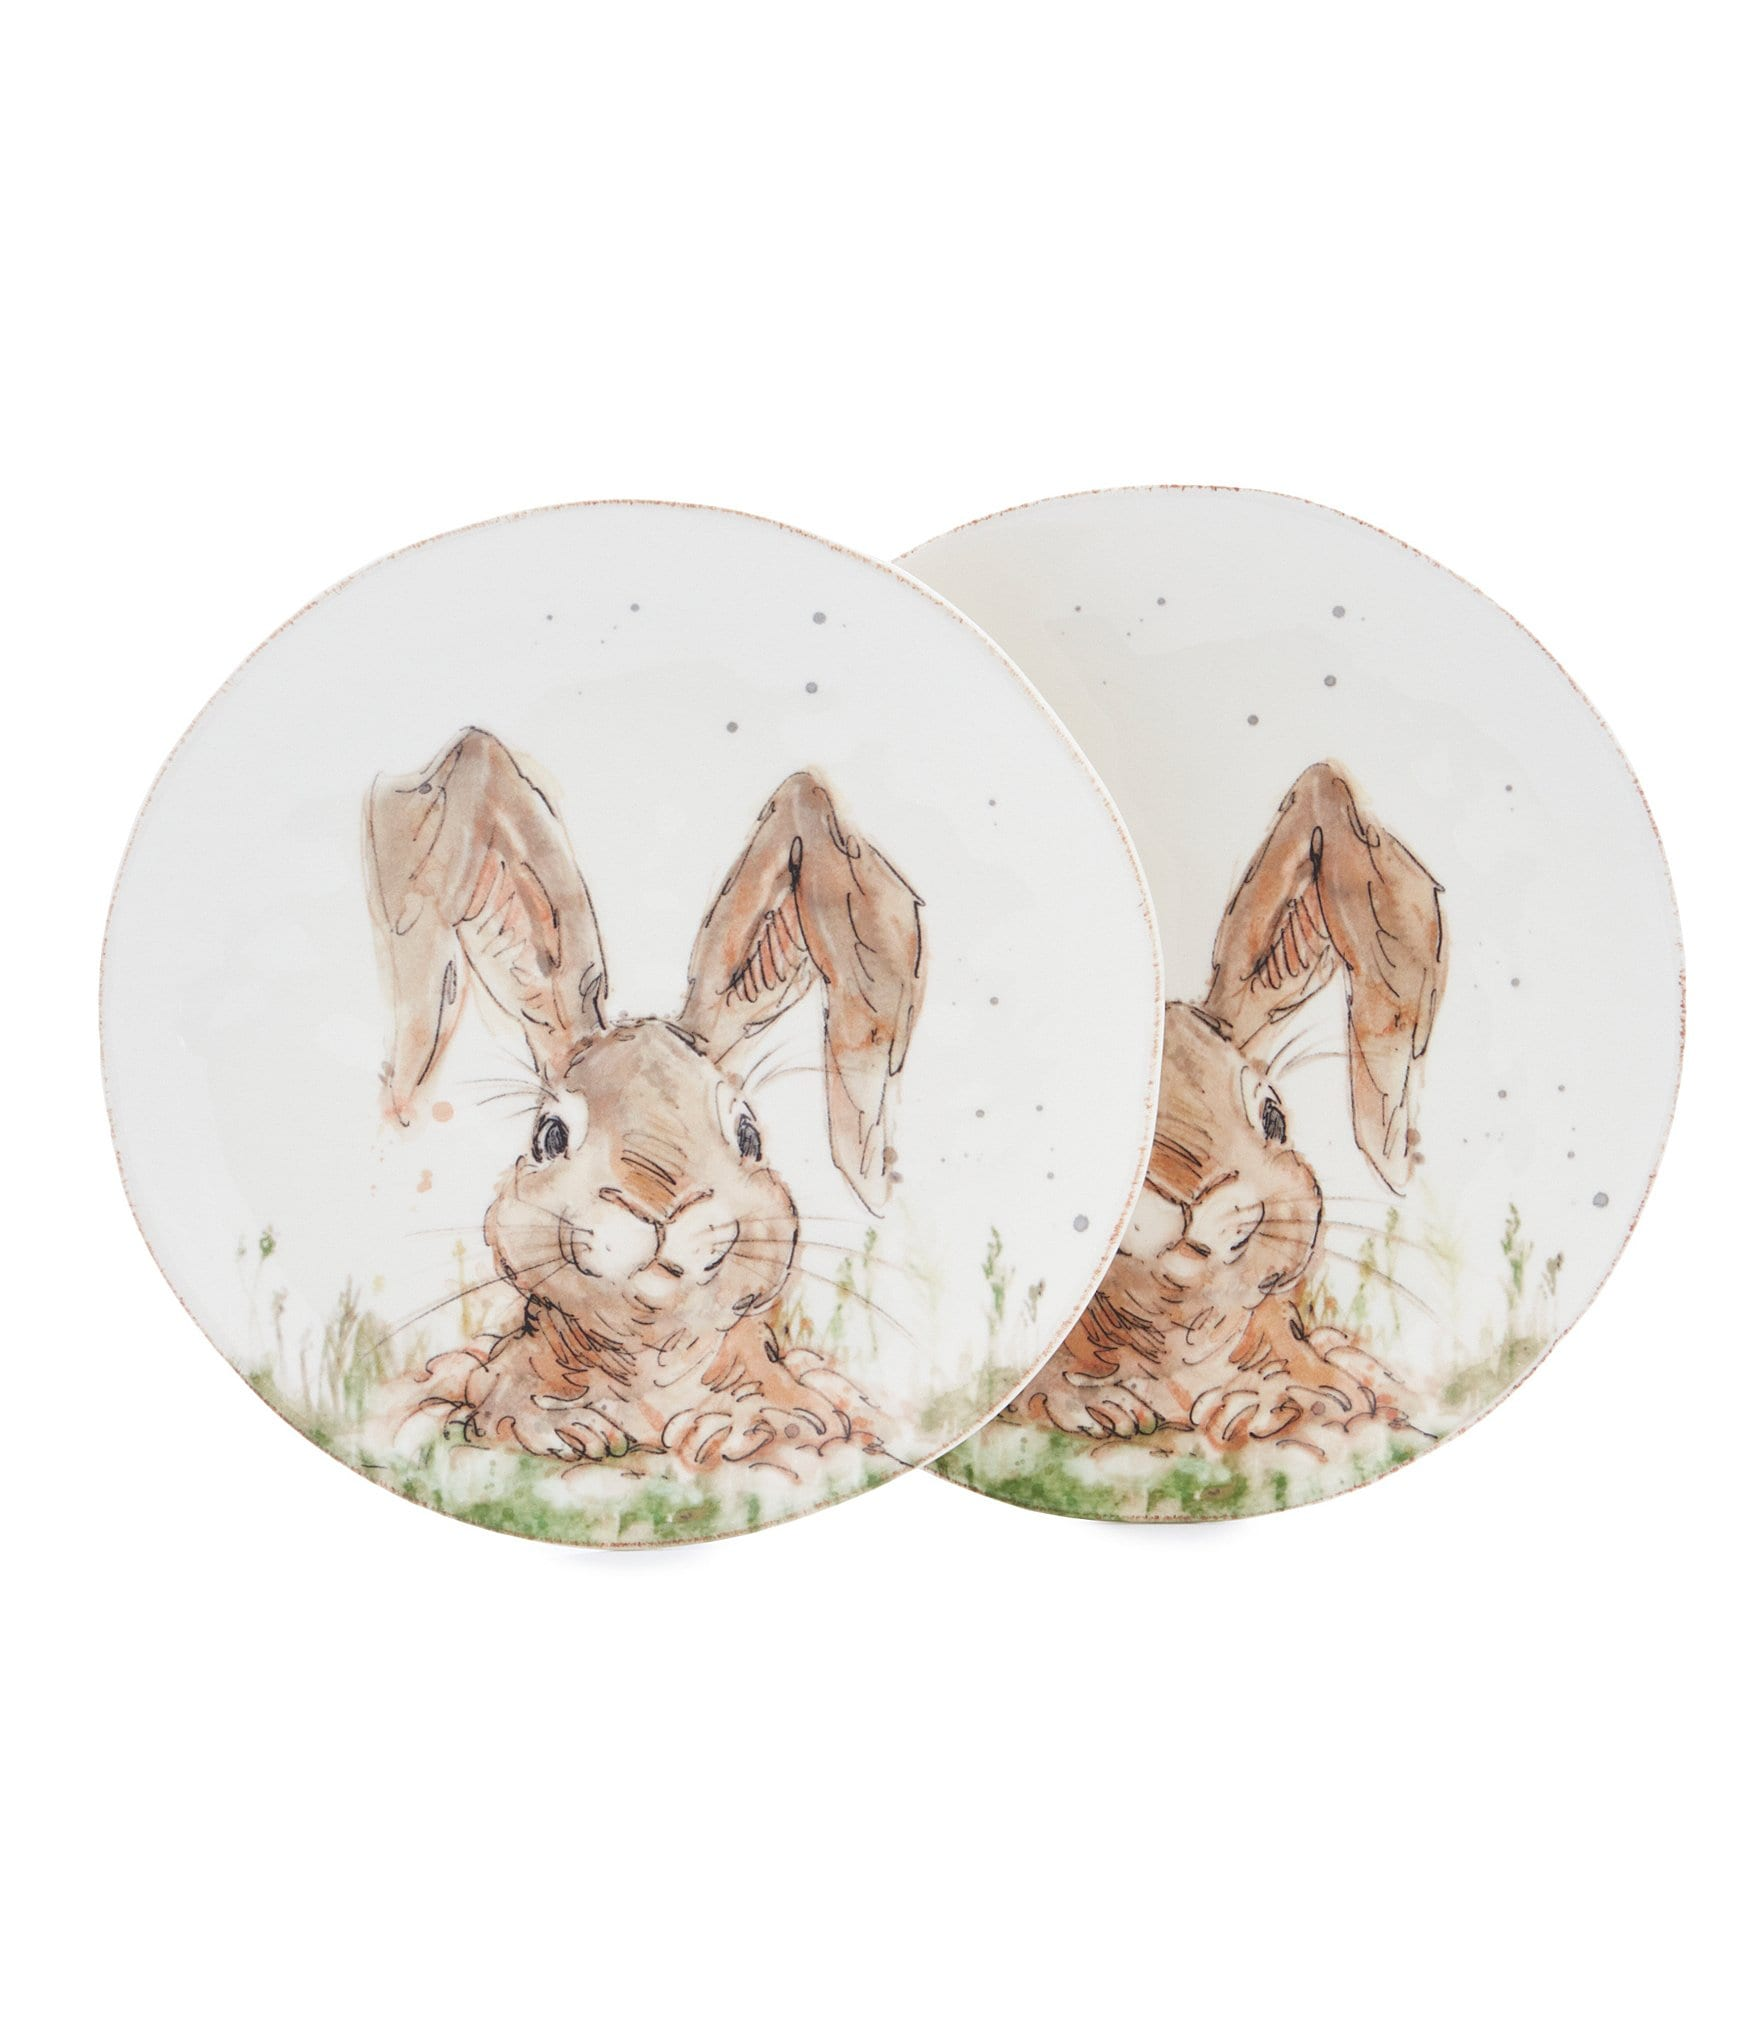 Southern living easter digger bunny salad plates set of 2 for Southern living login